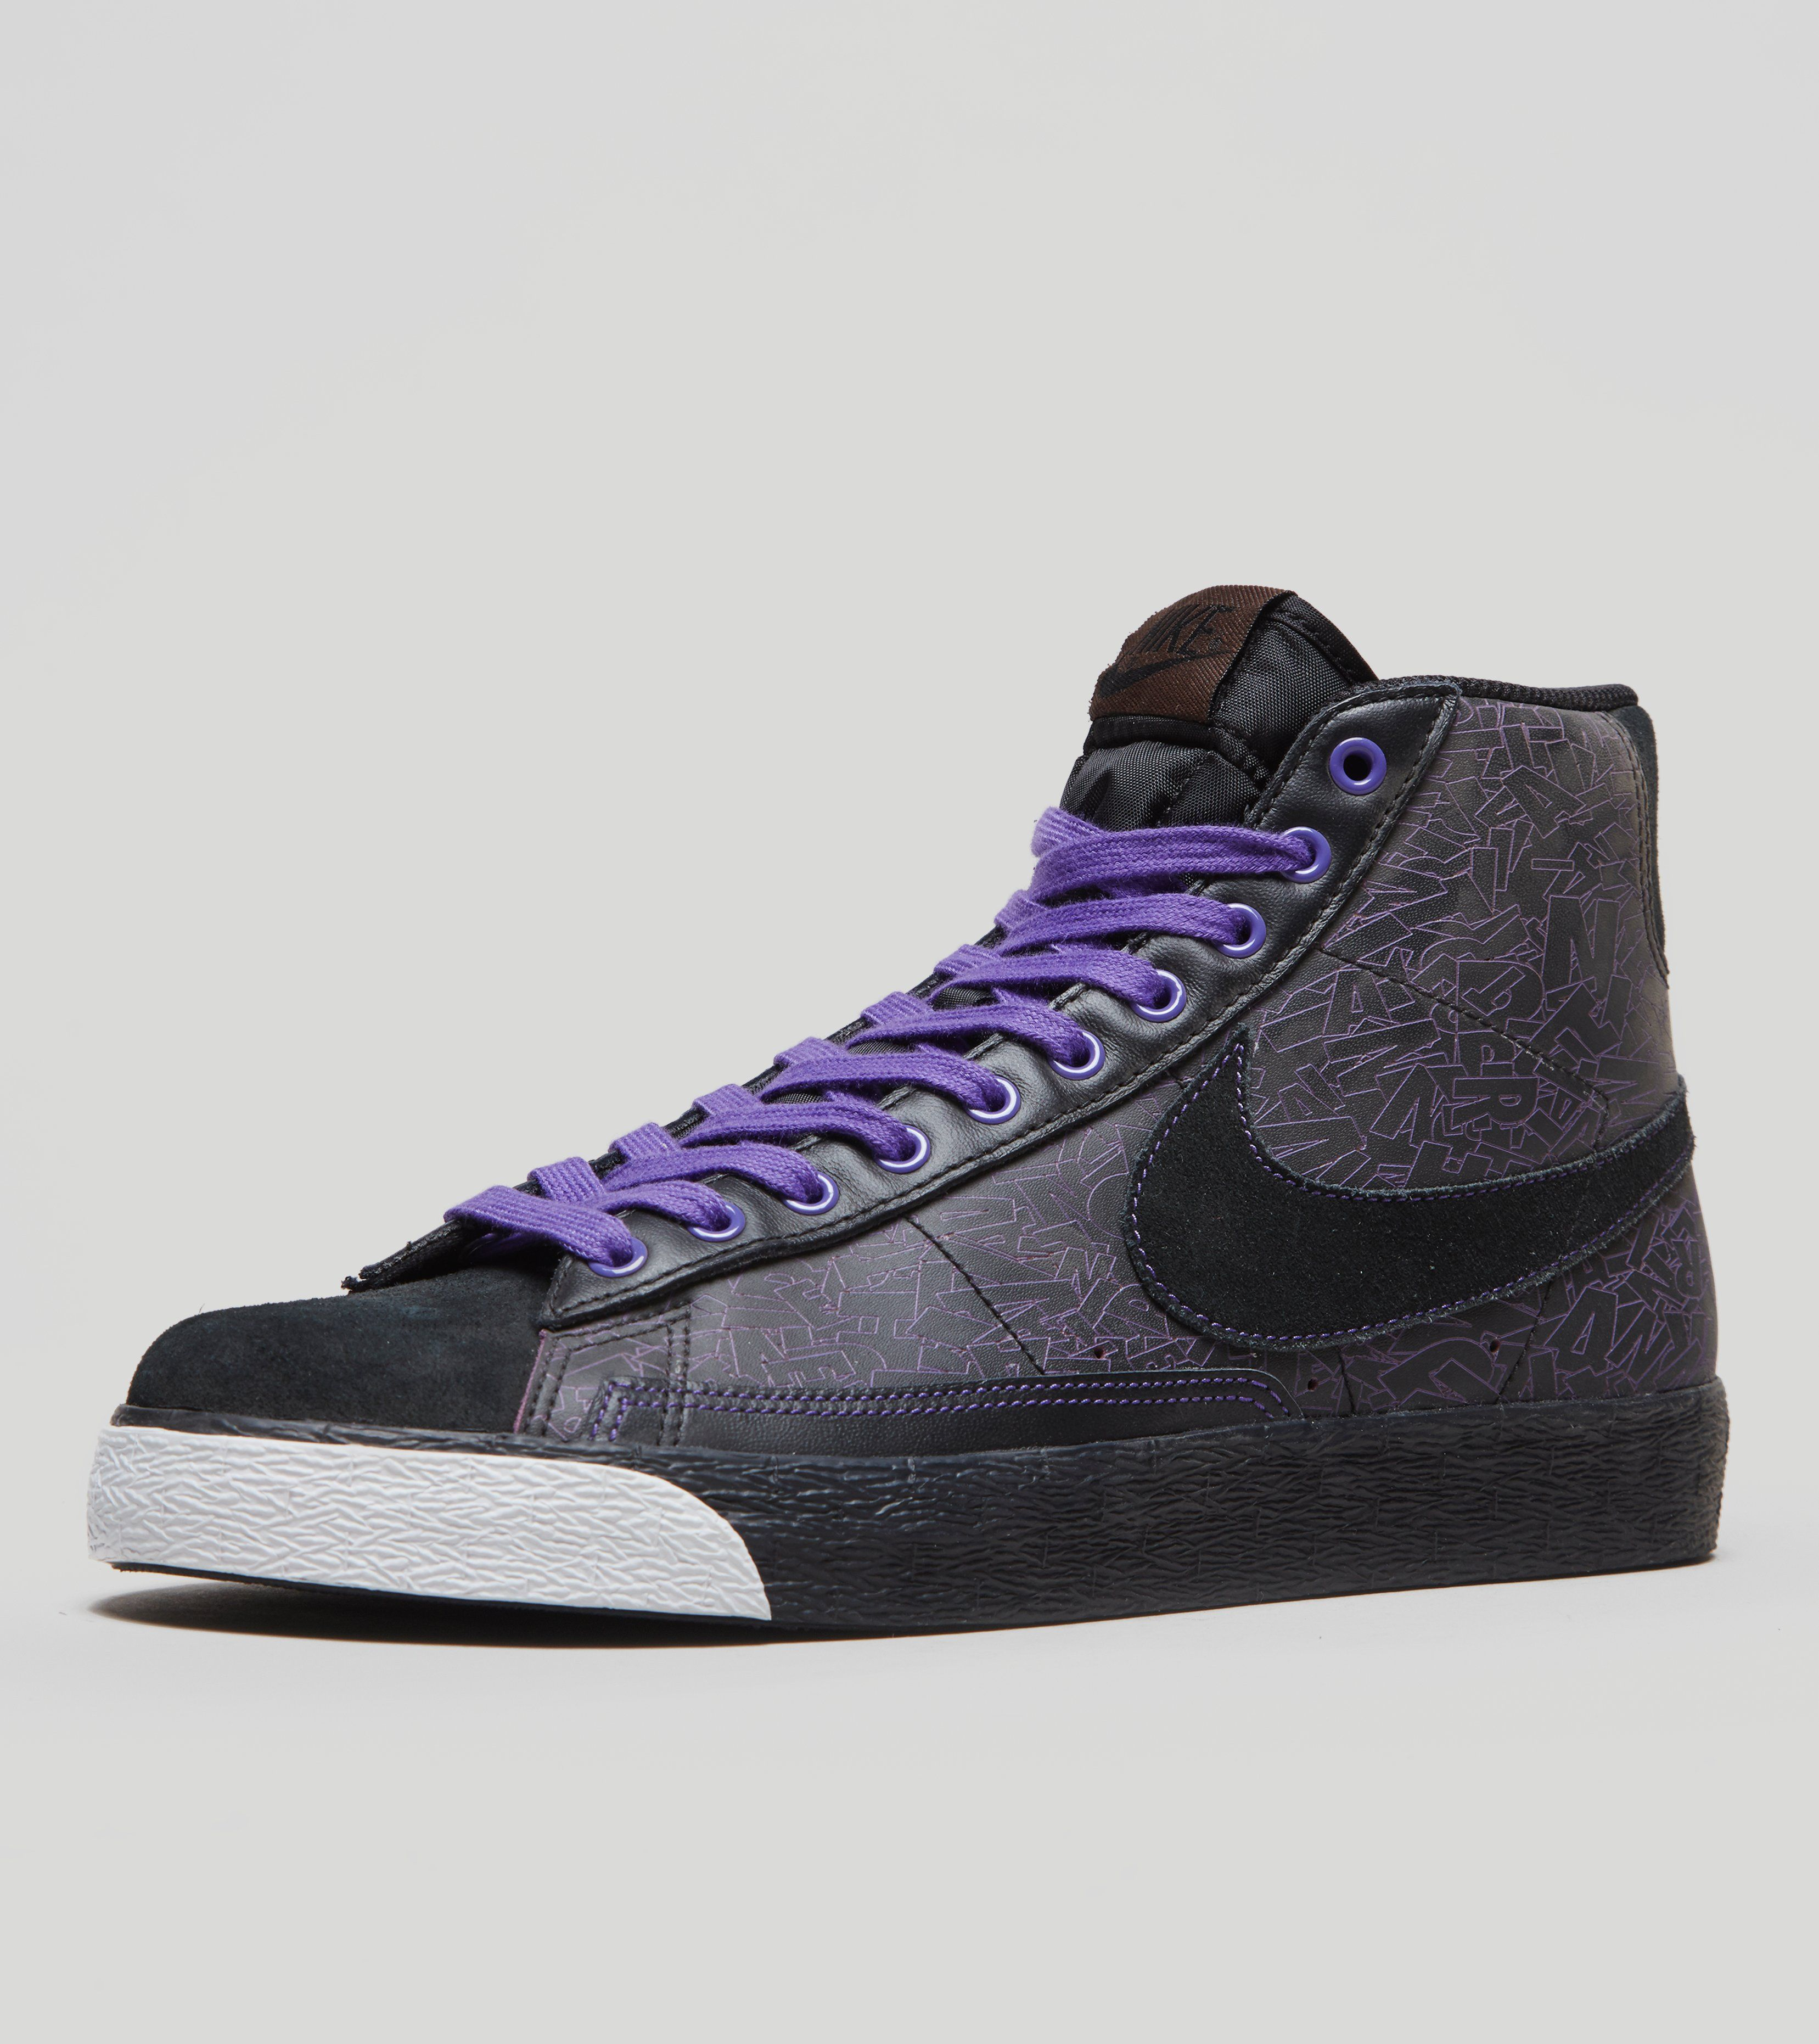 9152a55aafe3 ... promo code for nike blazer mid premium tg 4bfd5 54578